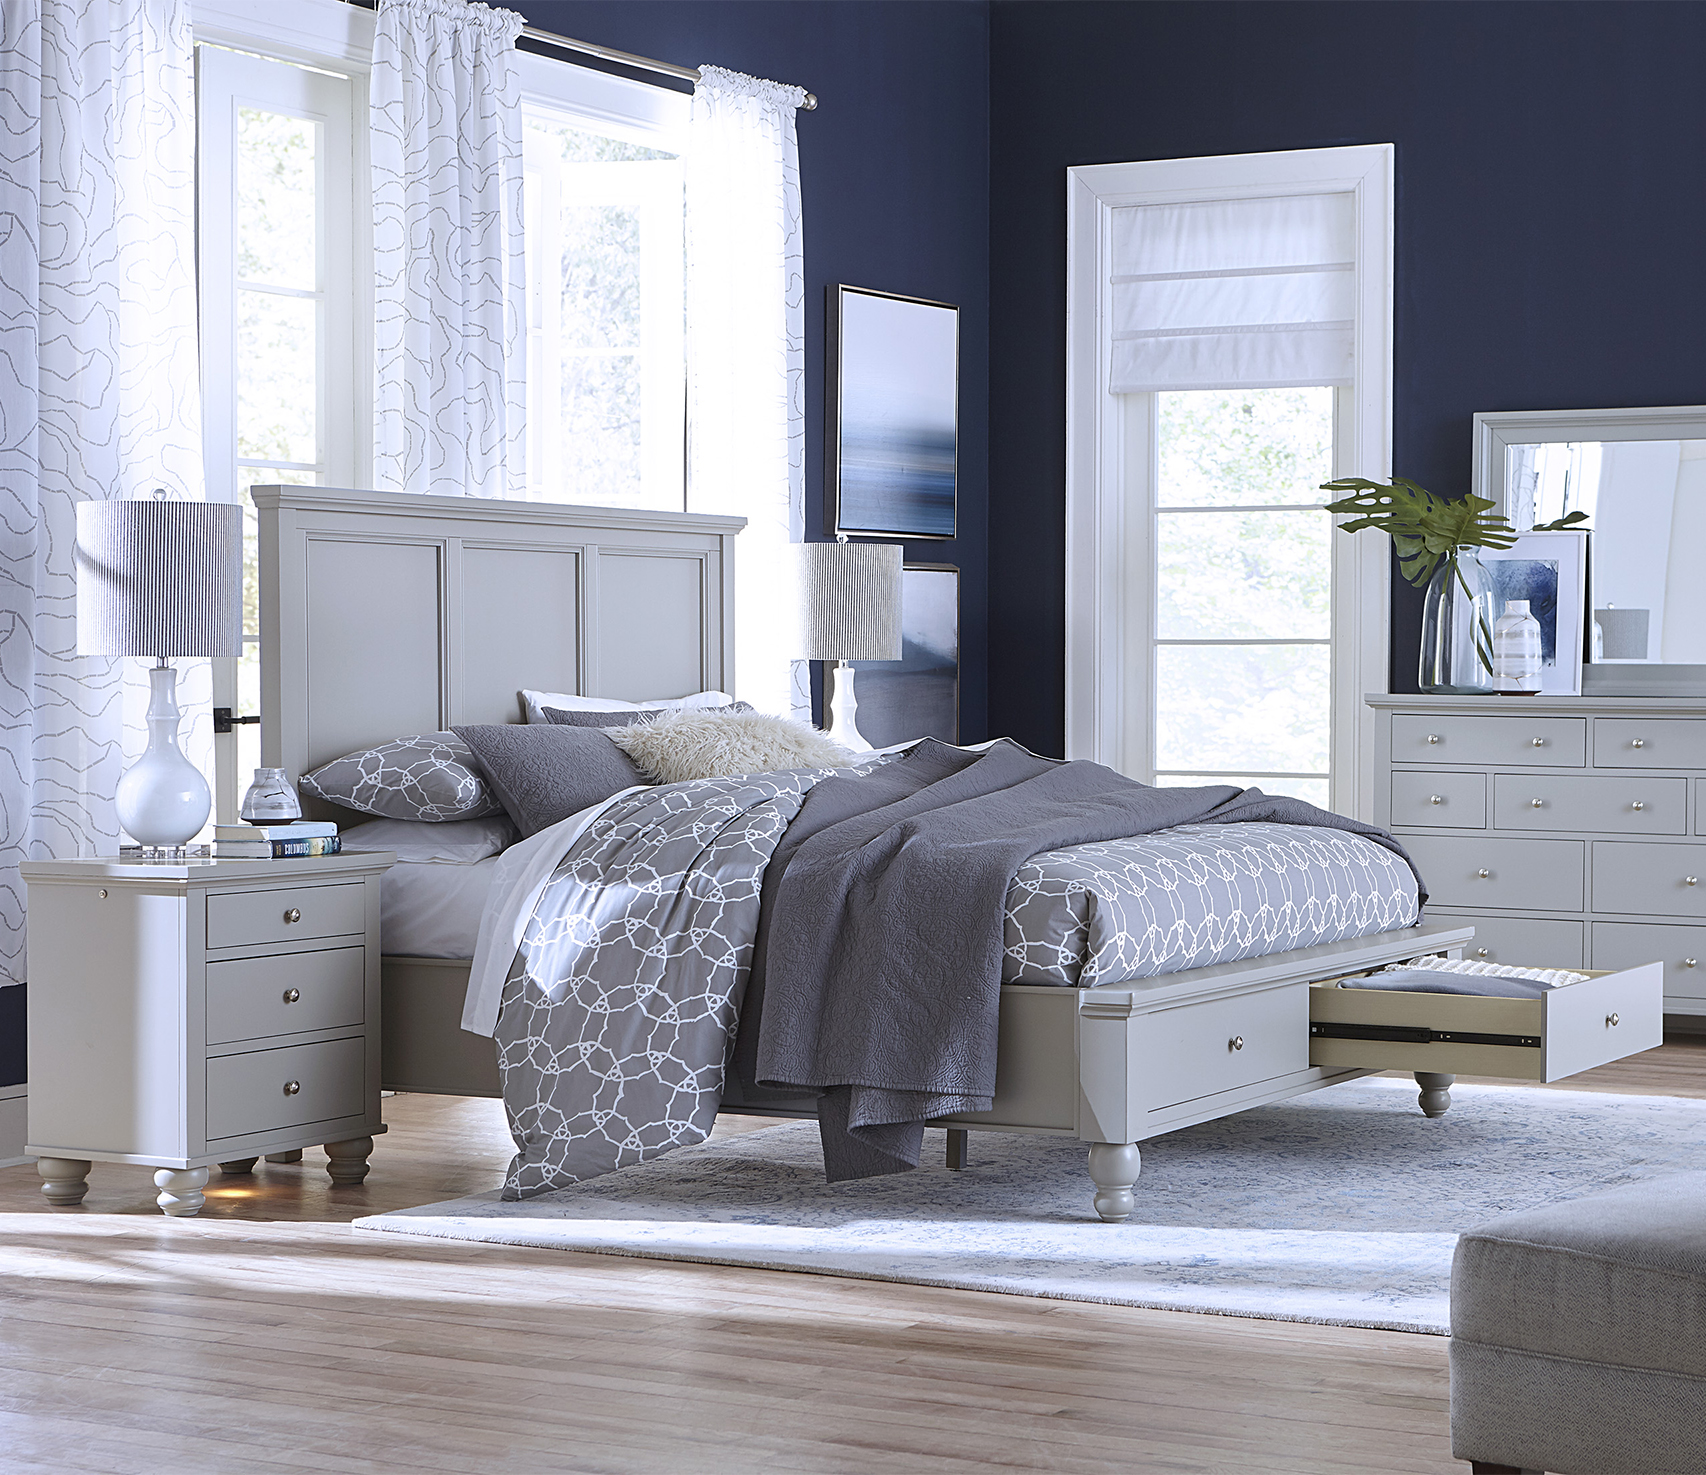 Cambridge - Save $100 With Purchase of Bed, Dresser, Mirror and Nightstand